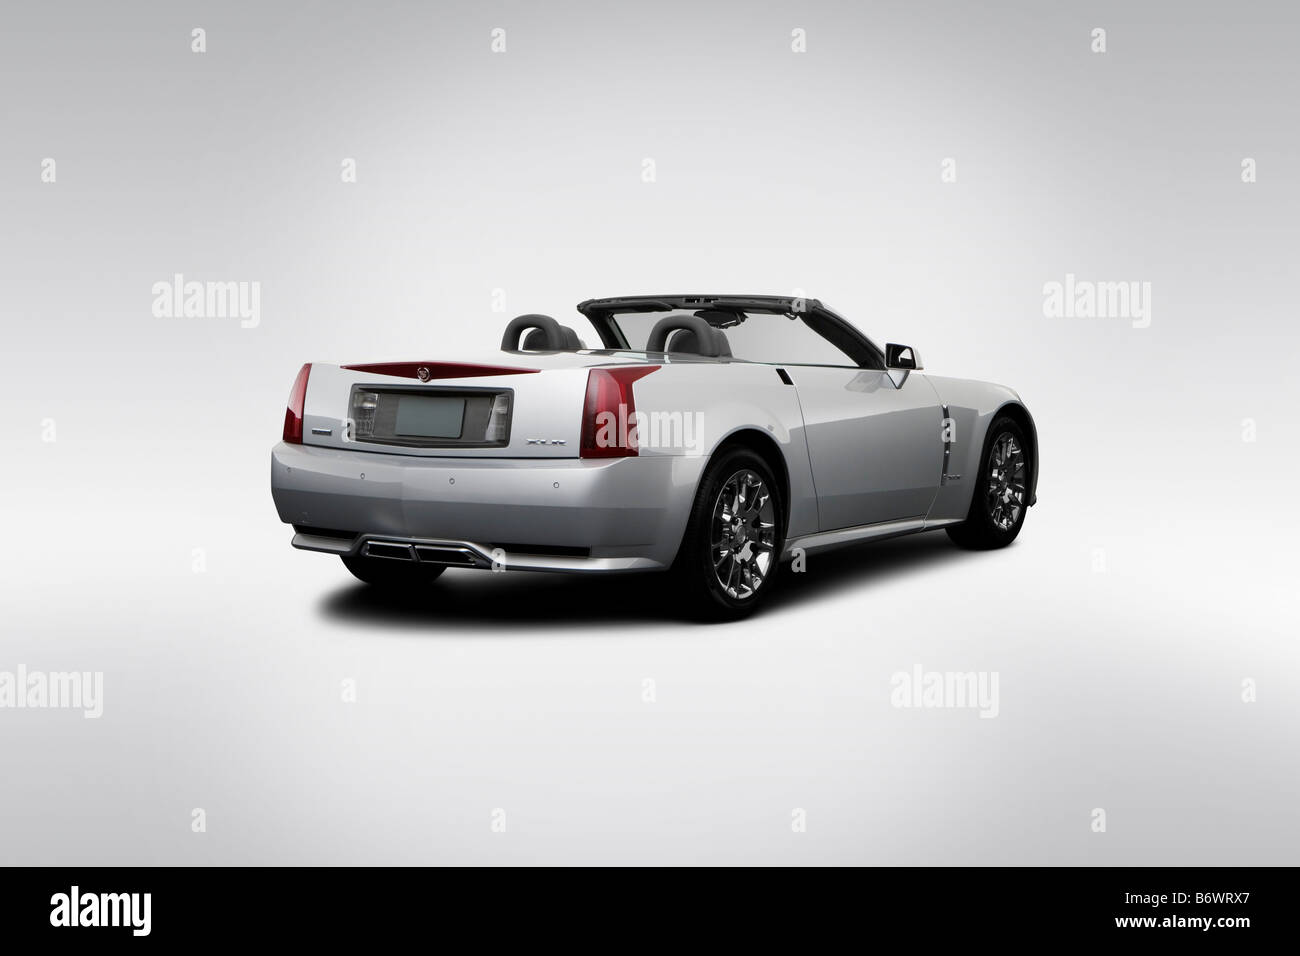 Cadillac Xlr Wiring Schematic Diagrams Engine Diagram Radio Schematics 2009 Aux Input Full Hd